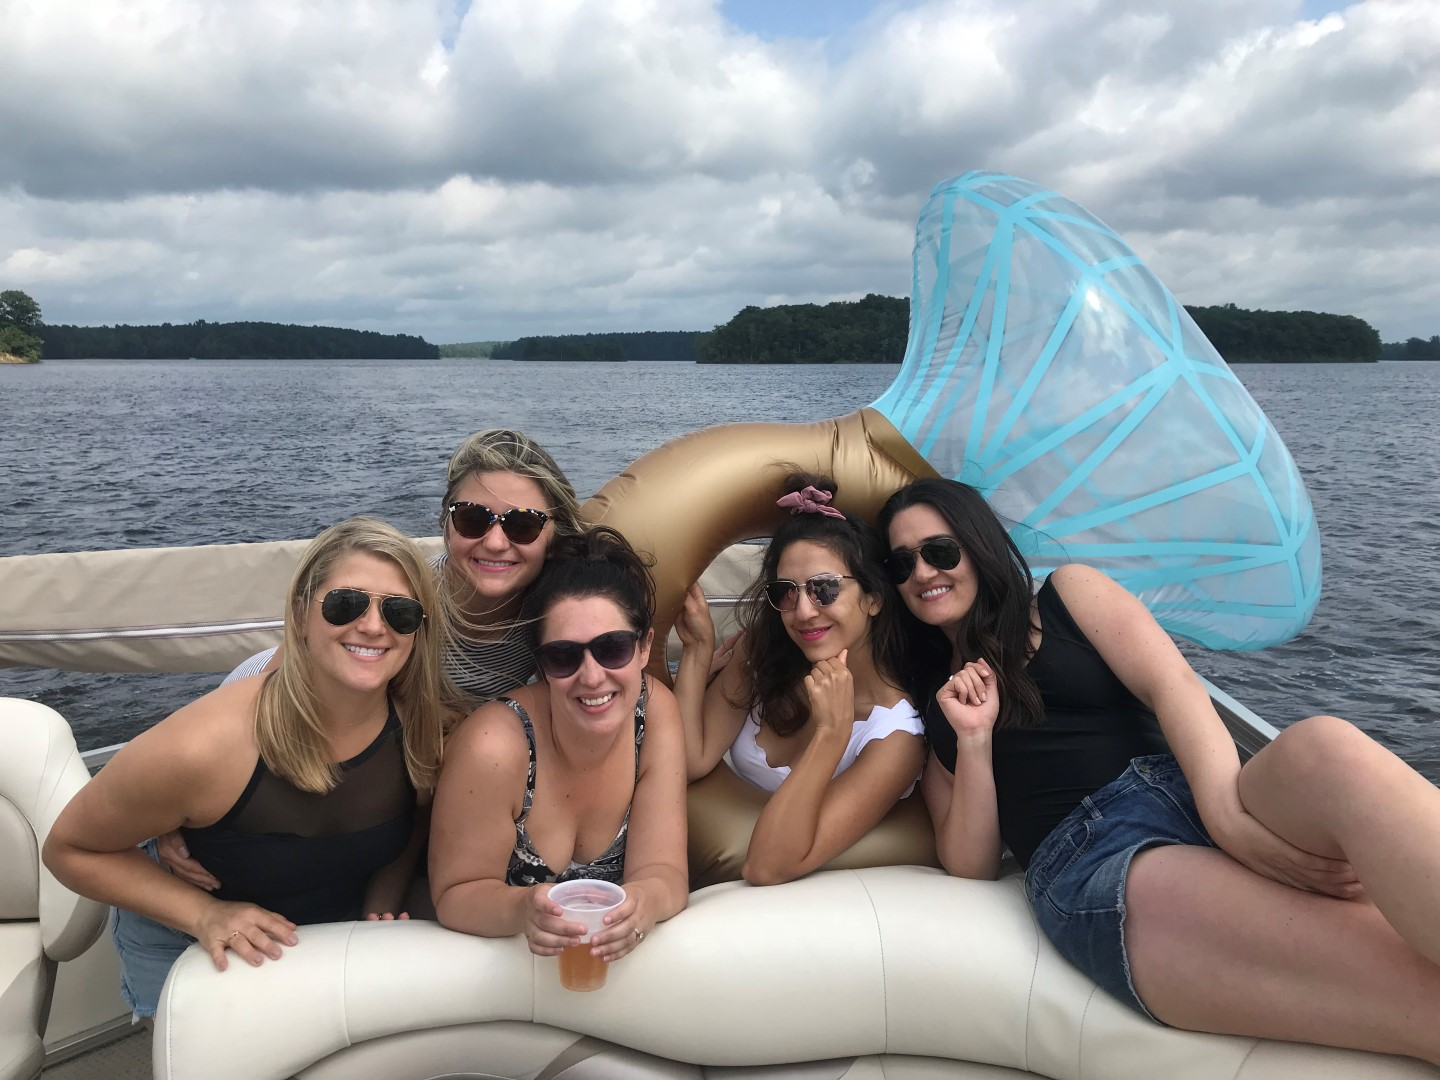 Girlfriends with diamond ring pool float.